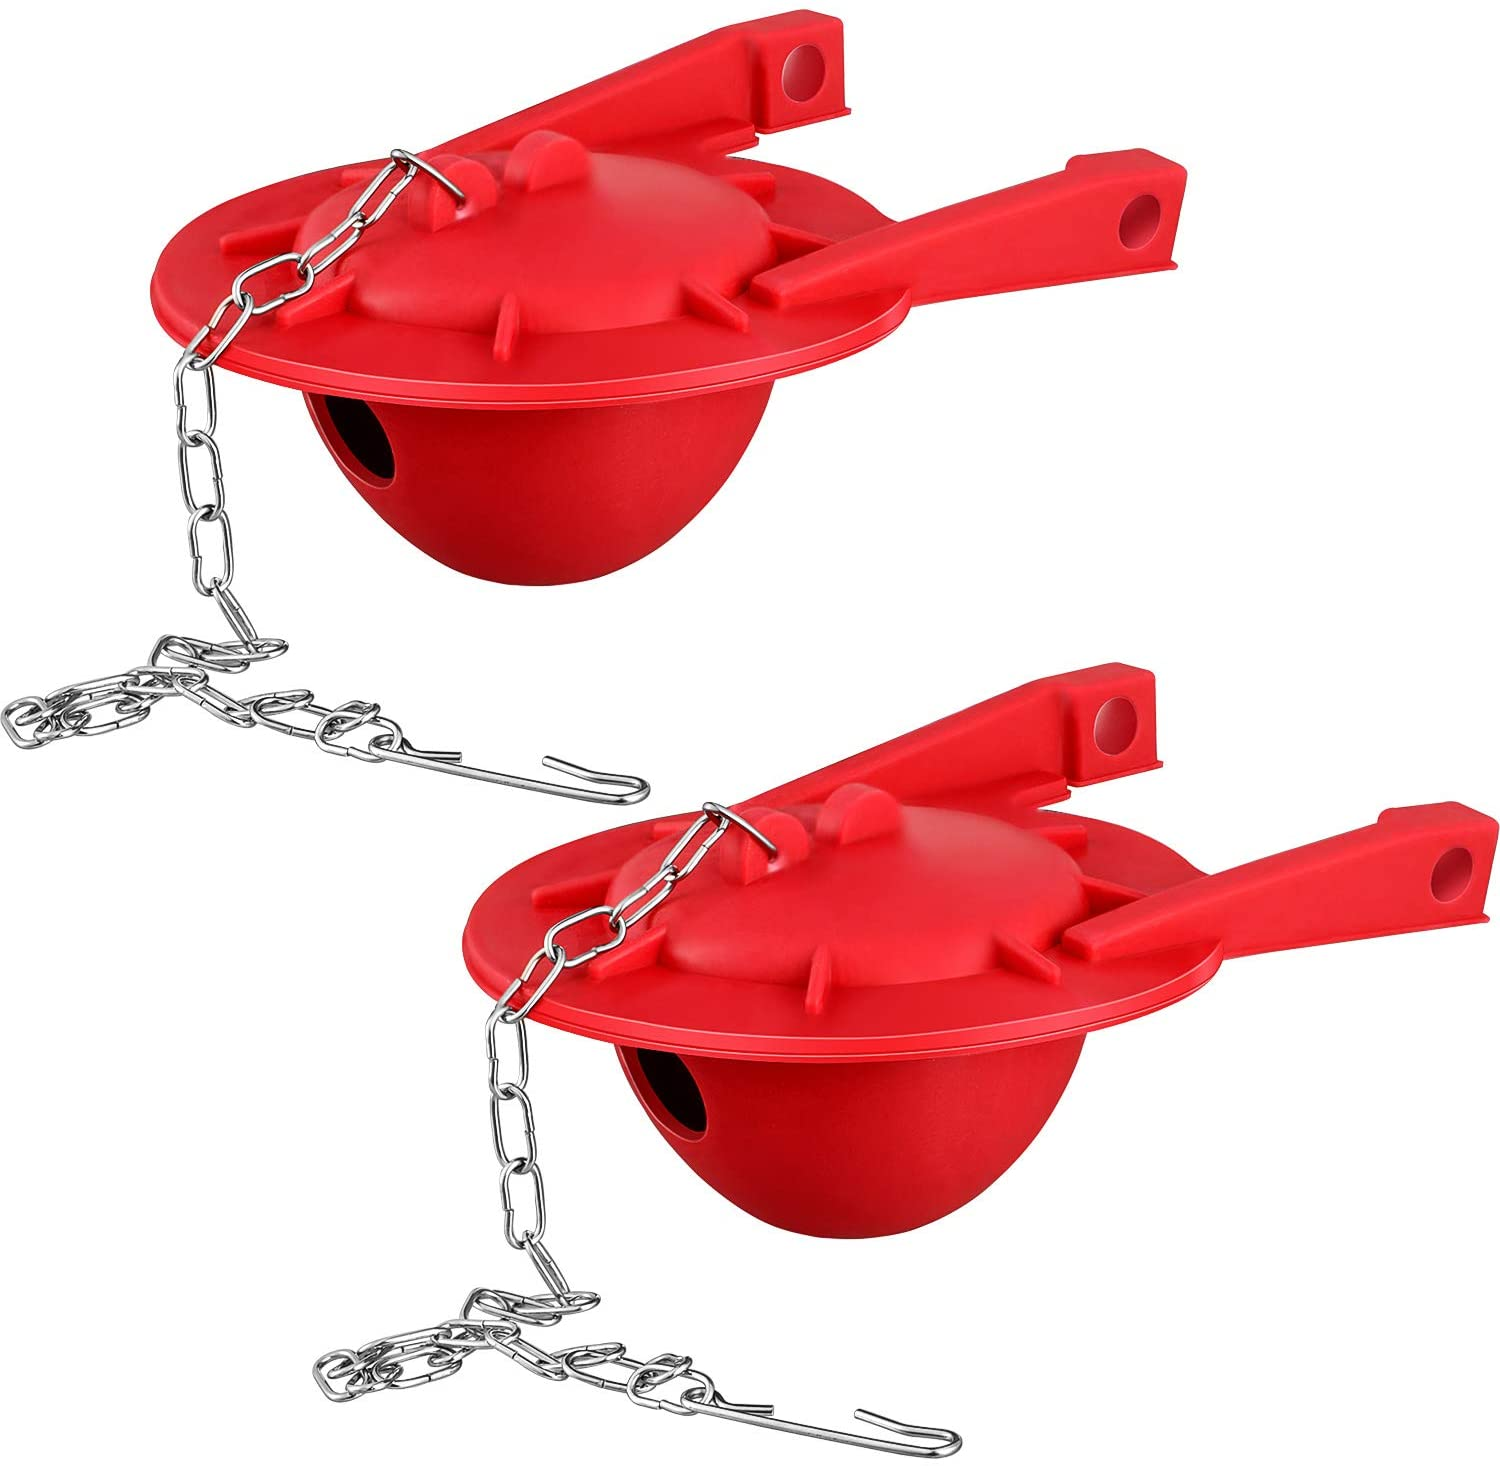 2 Pieces Toilet Flapper Replacement Water Saving Toilet Flapper with Stainless Steel Chain, 3 Inch